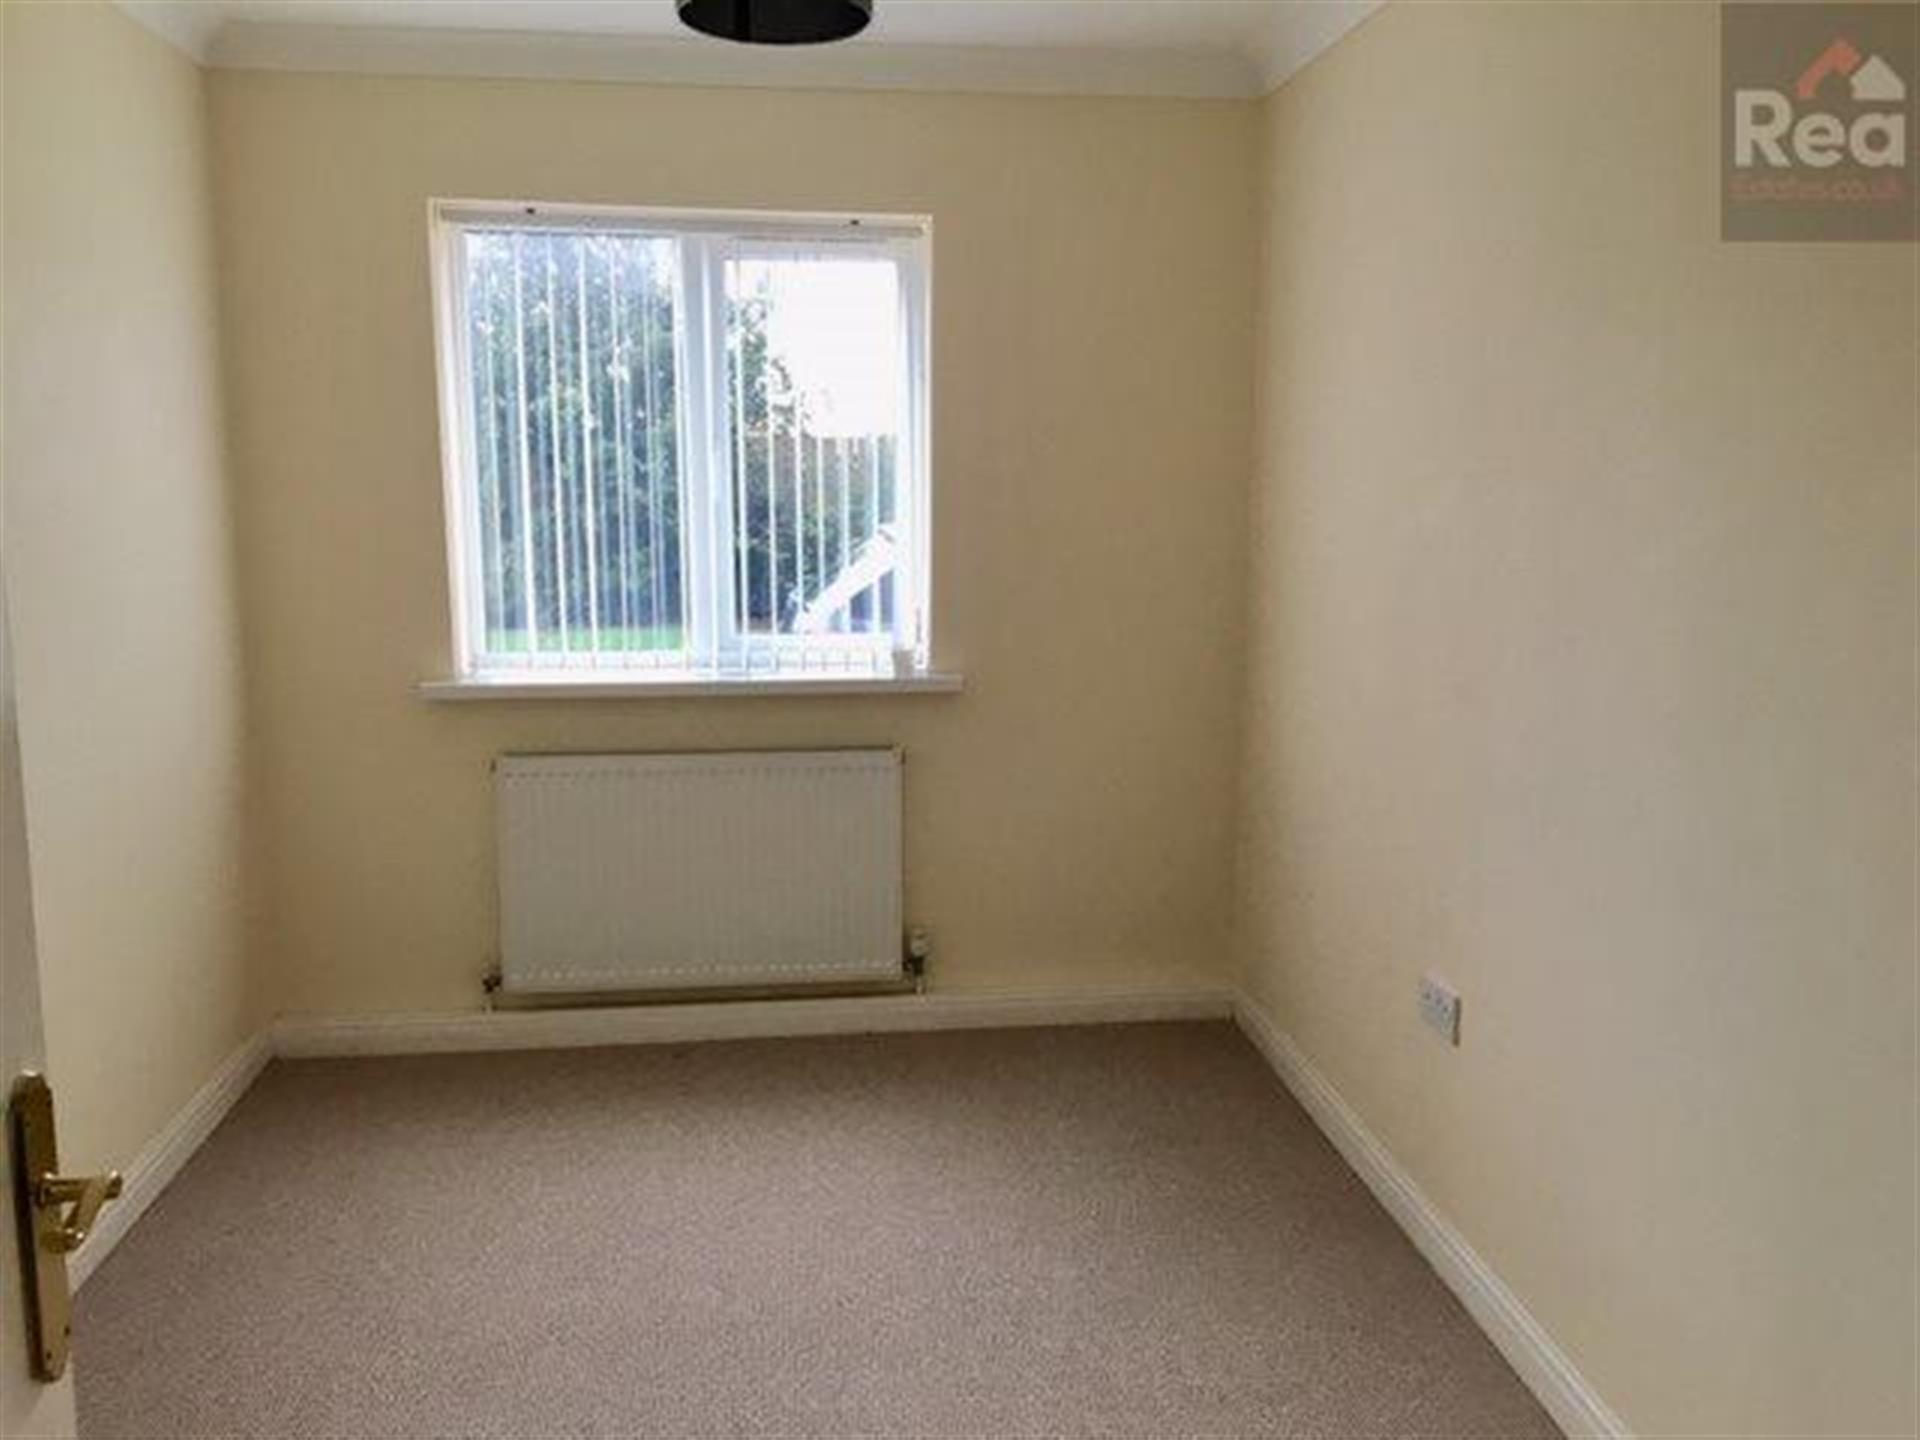 2 bedroom flat flat / apartment To Let in Tindale Crescent, Bishop Auckland - photograph 4.